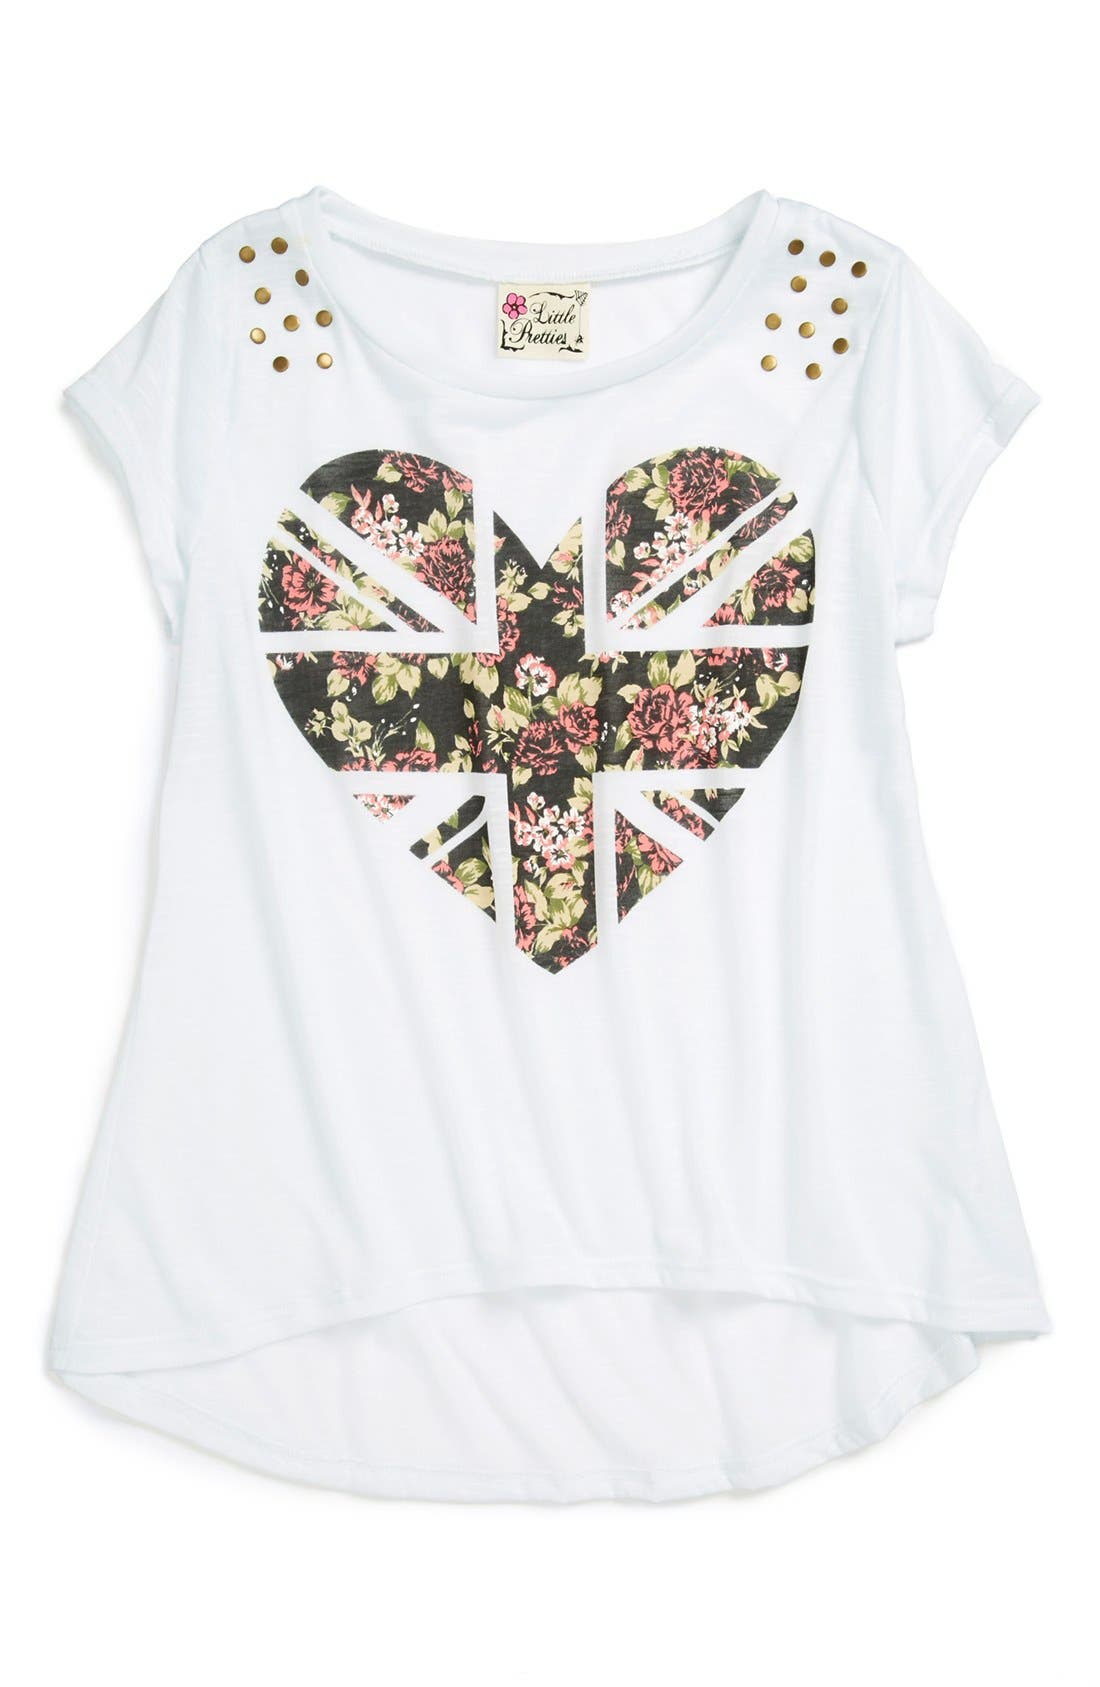 Main Image - Little Pretties High/Low Graphic Tee (Little Girls & Big Girls)